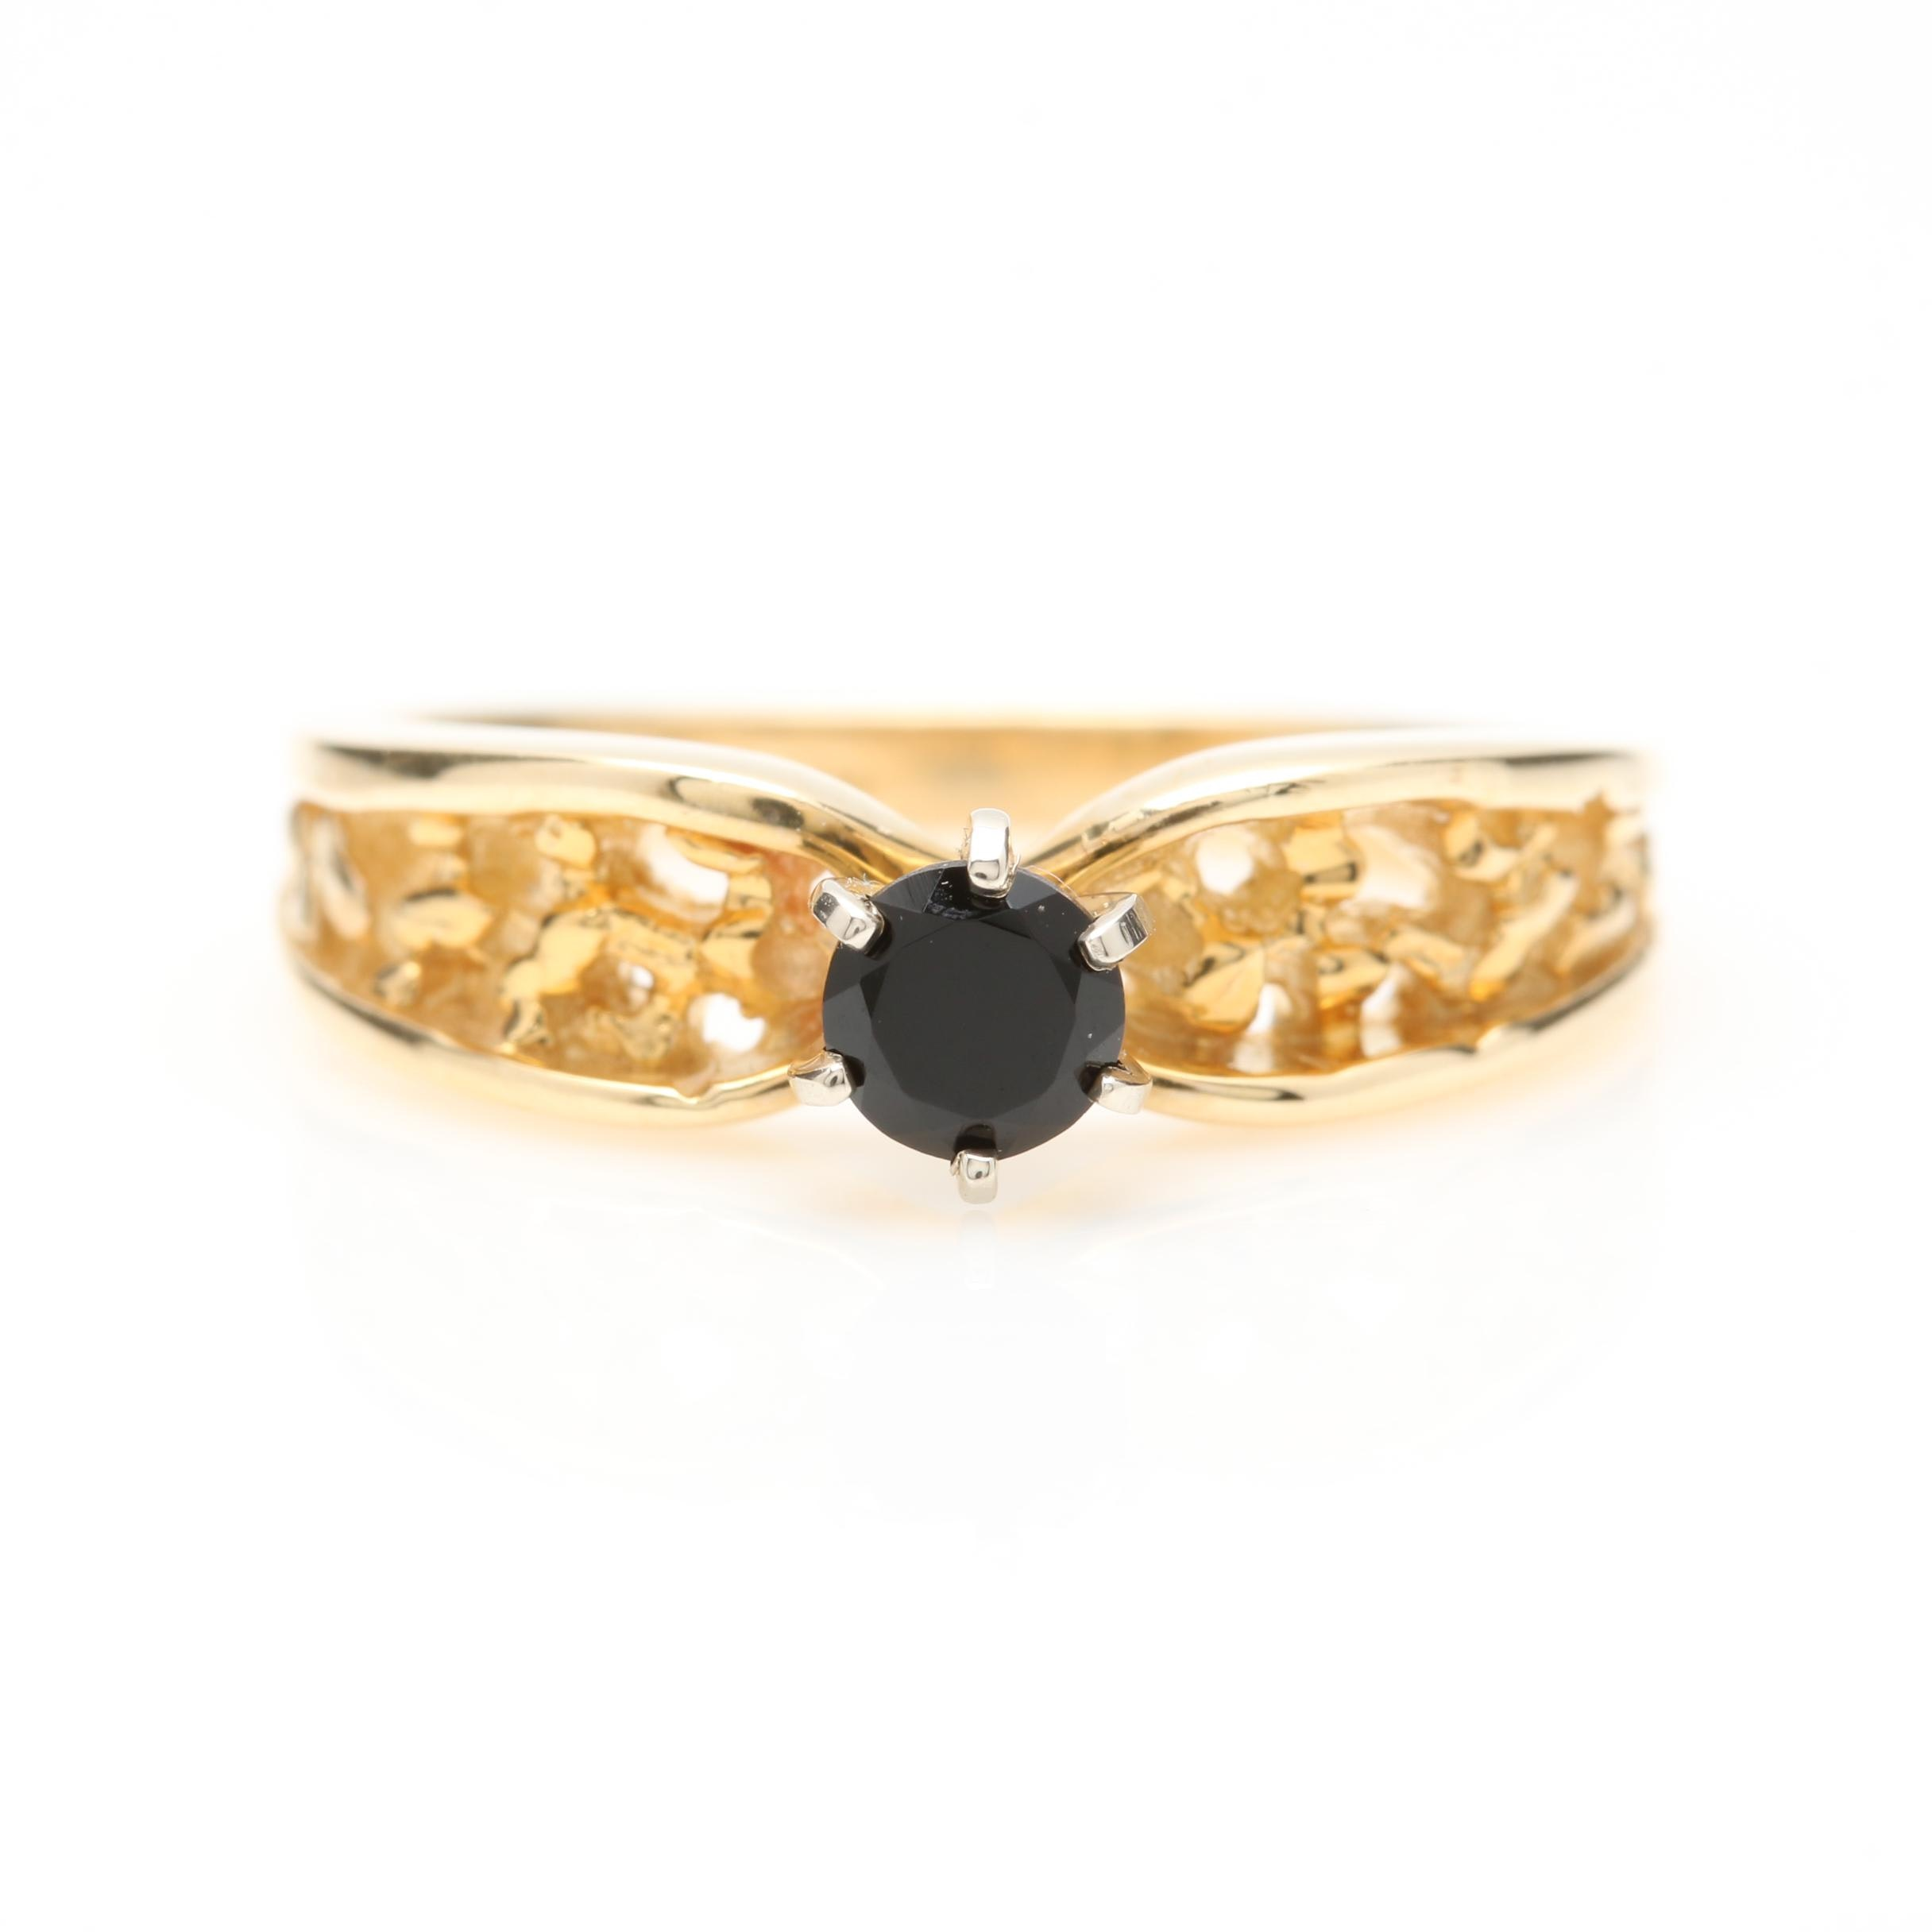 14K Yellow Gold Black Onyx Solitaire Ring